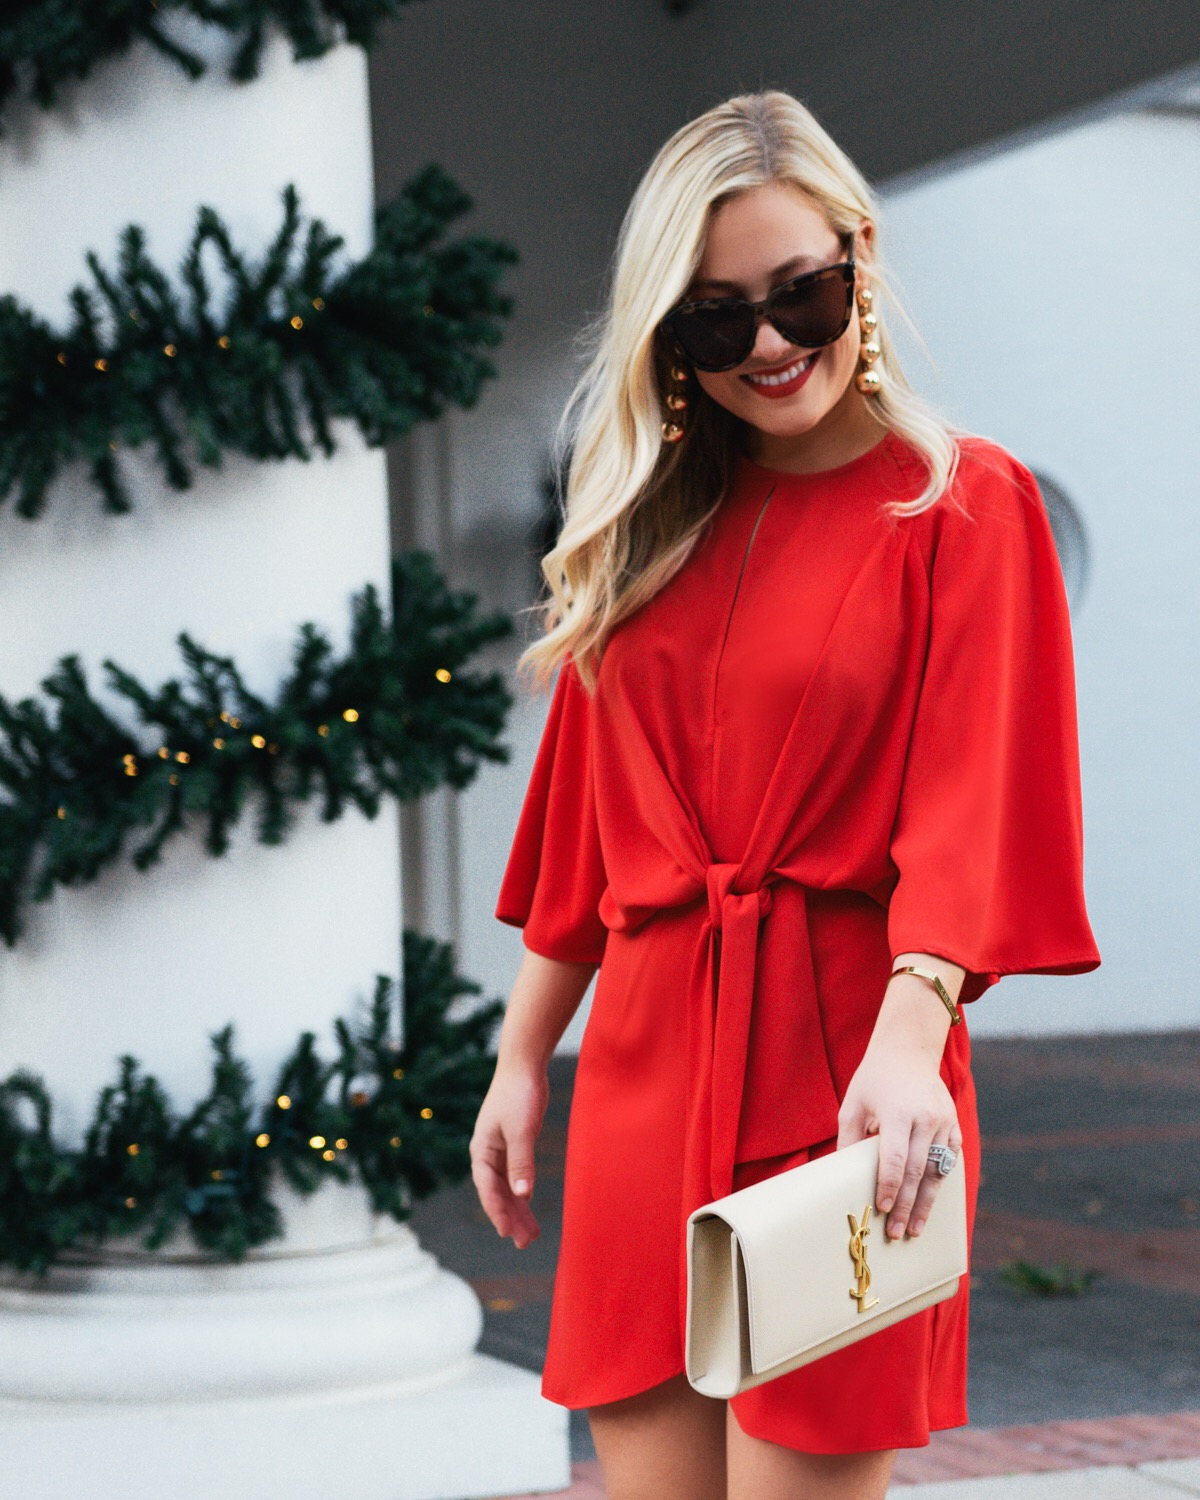 Holiday Dress Under $100, Red Topshop Dress, Nordstrom Topshop, Holiday Dress, Red Dress, YSL Clutch, Saint Laurent Handbag, Valentino Rockstuds, Nude Valentino Rockstuds